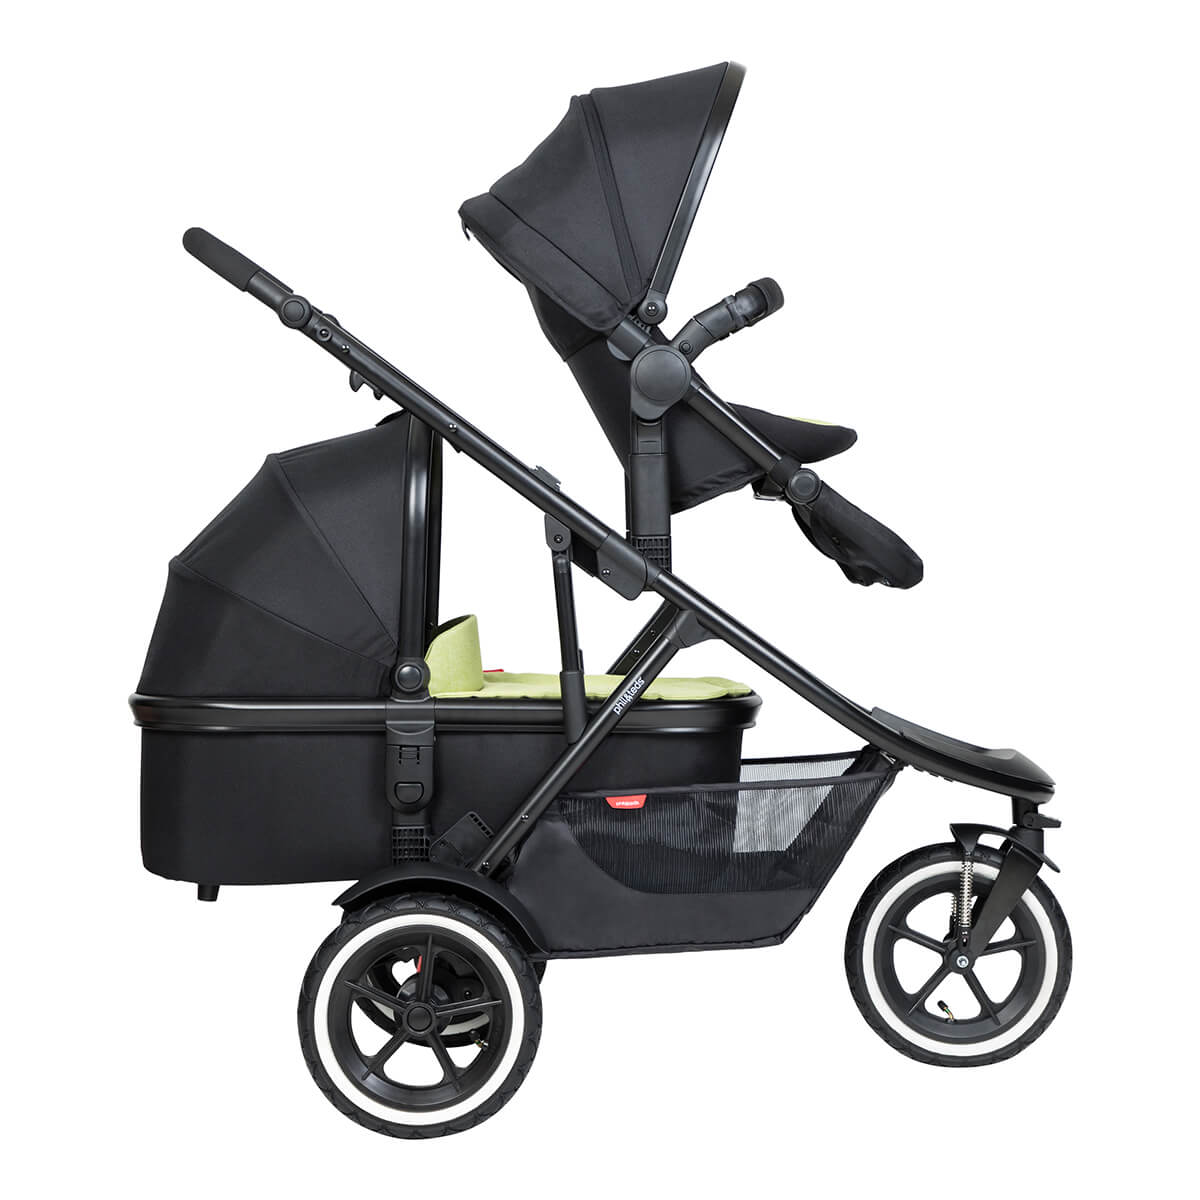 https://cdn.accentuate.io/4509527965784/19272668282968/philteds-sport-poussette-with-double-kit-extended-clip-and-snug-carrycot-side-view-v1626484397894.jpg?1200x1200